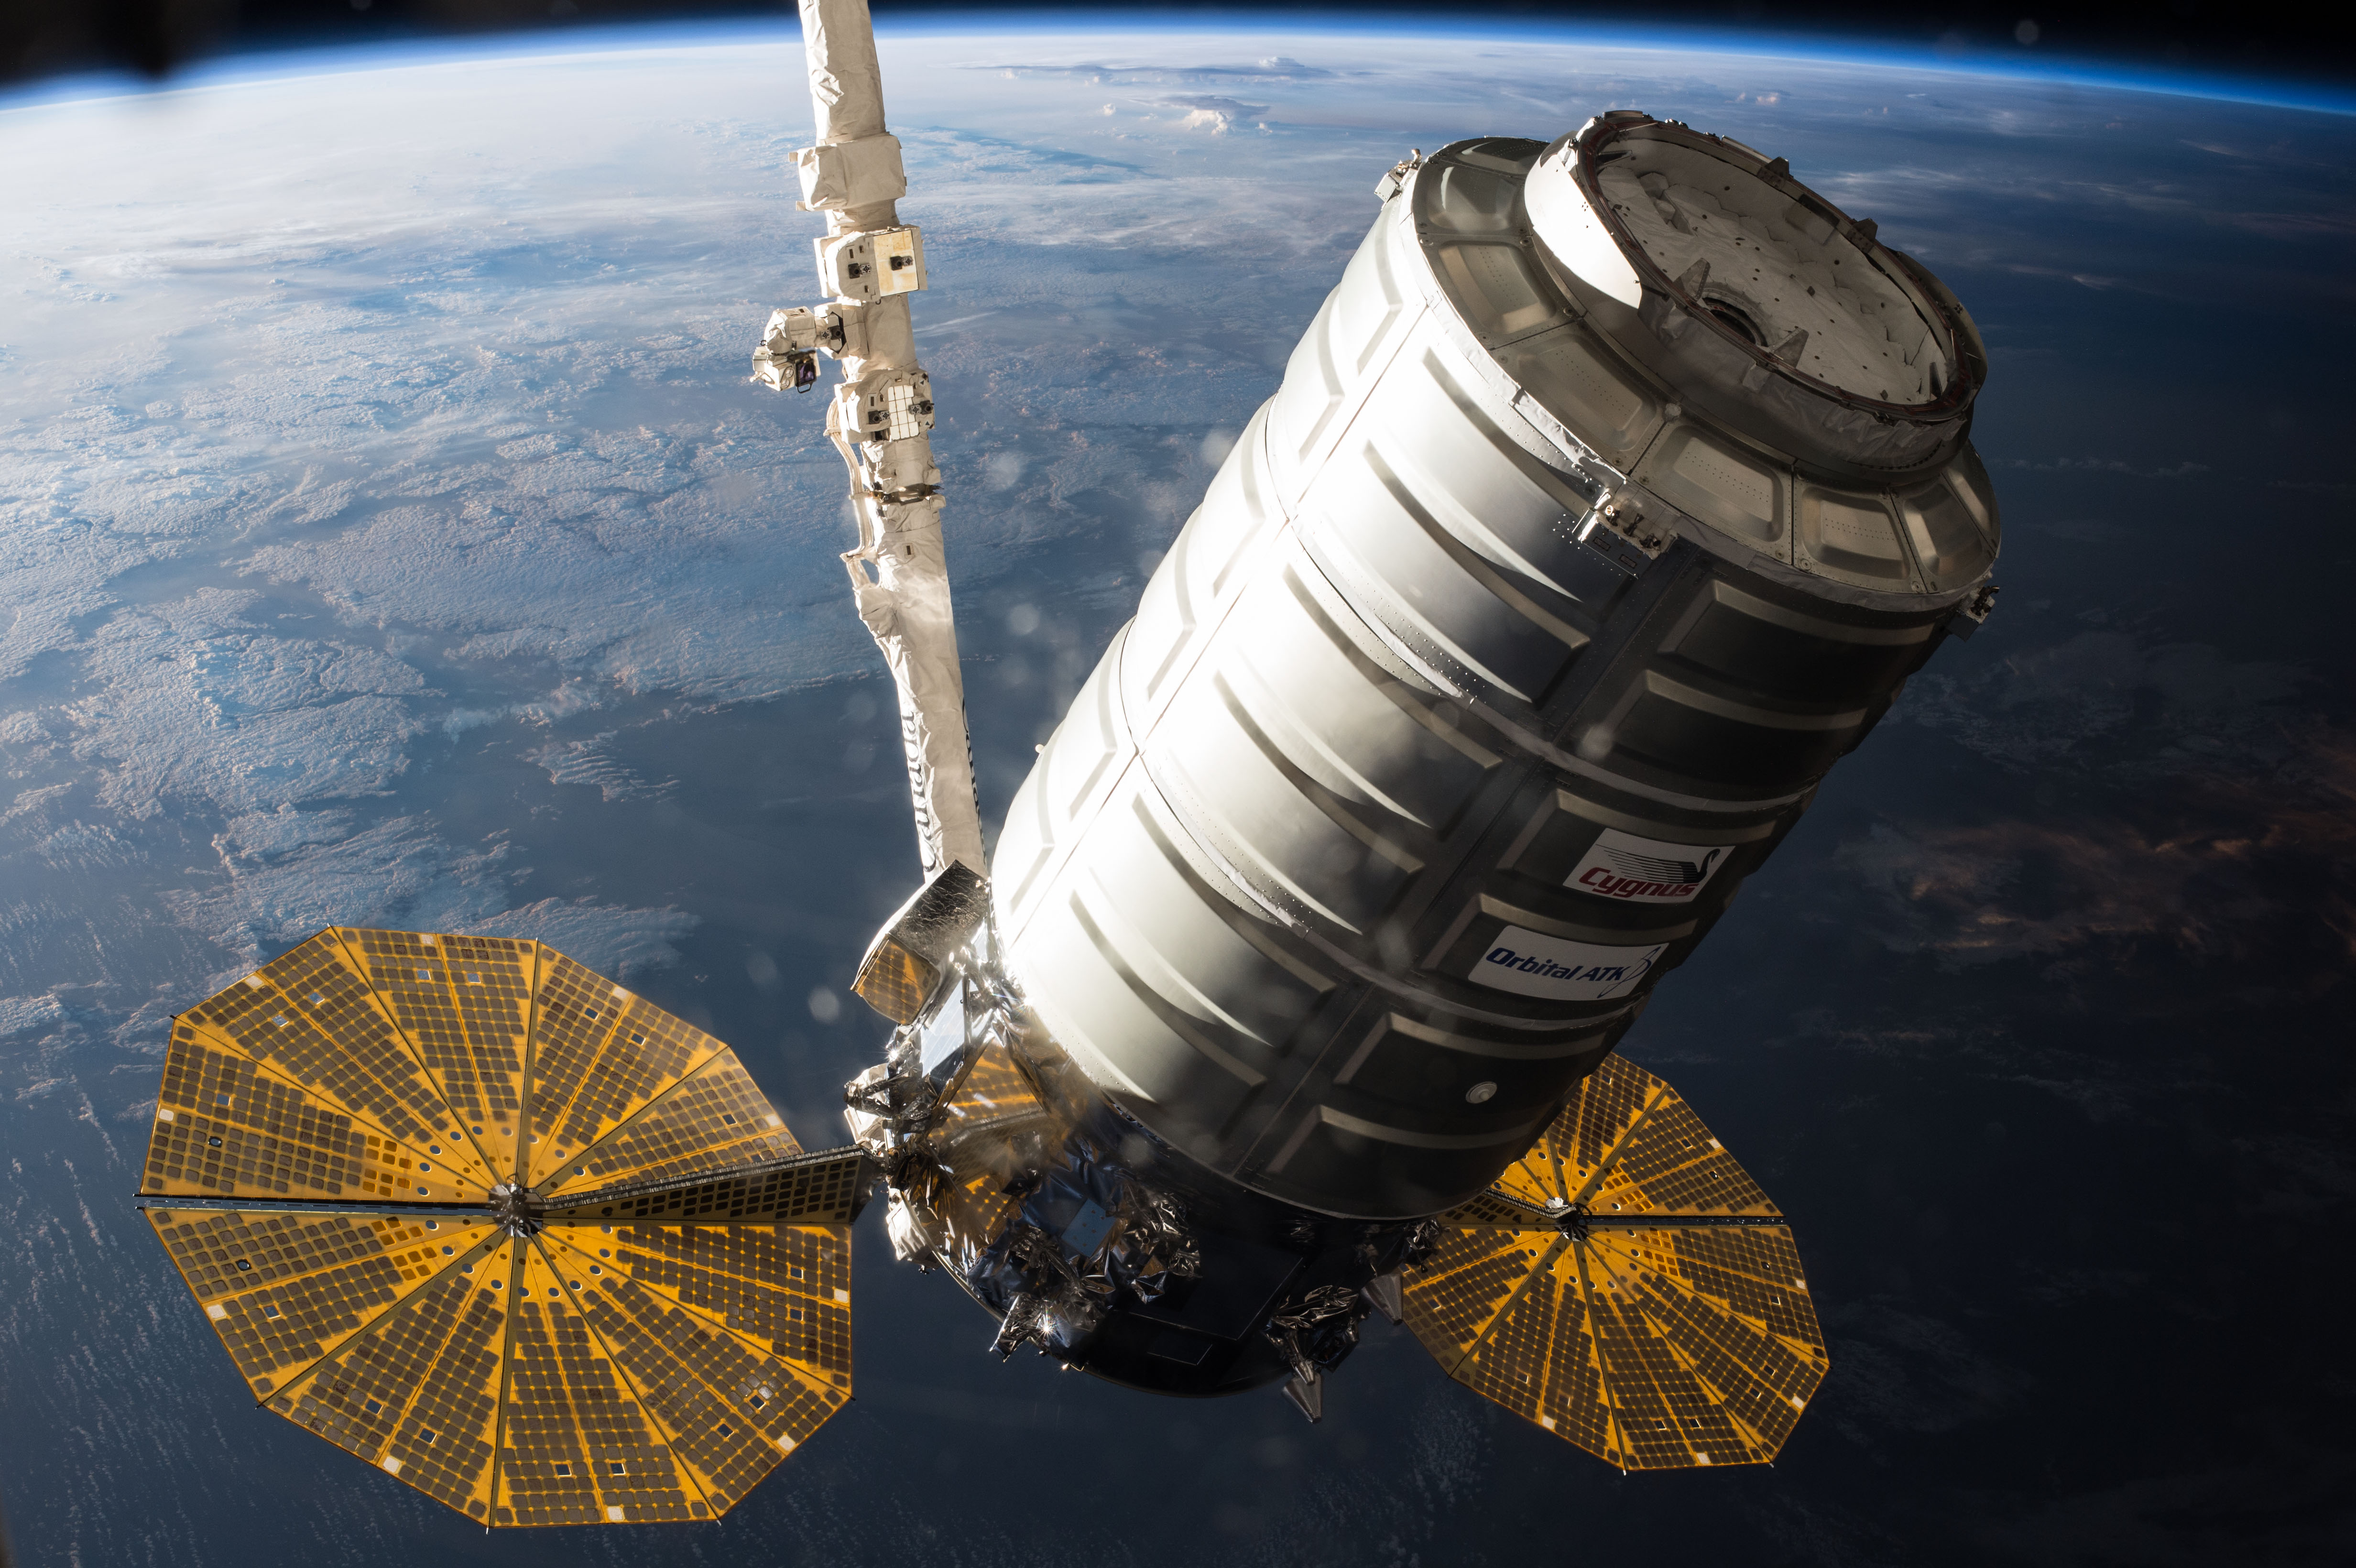 Orbital ATK is developing a new device to extend the life of satellites